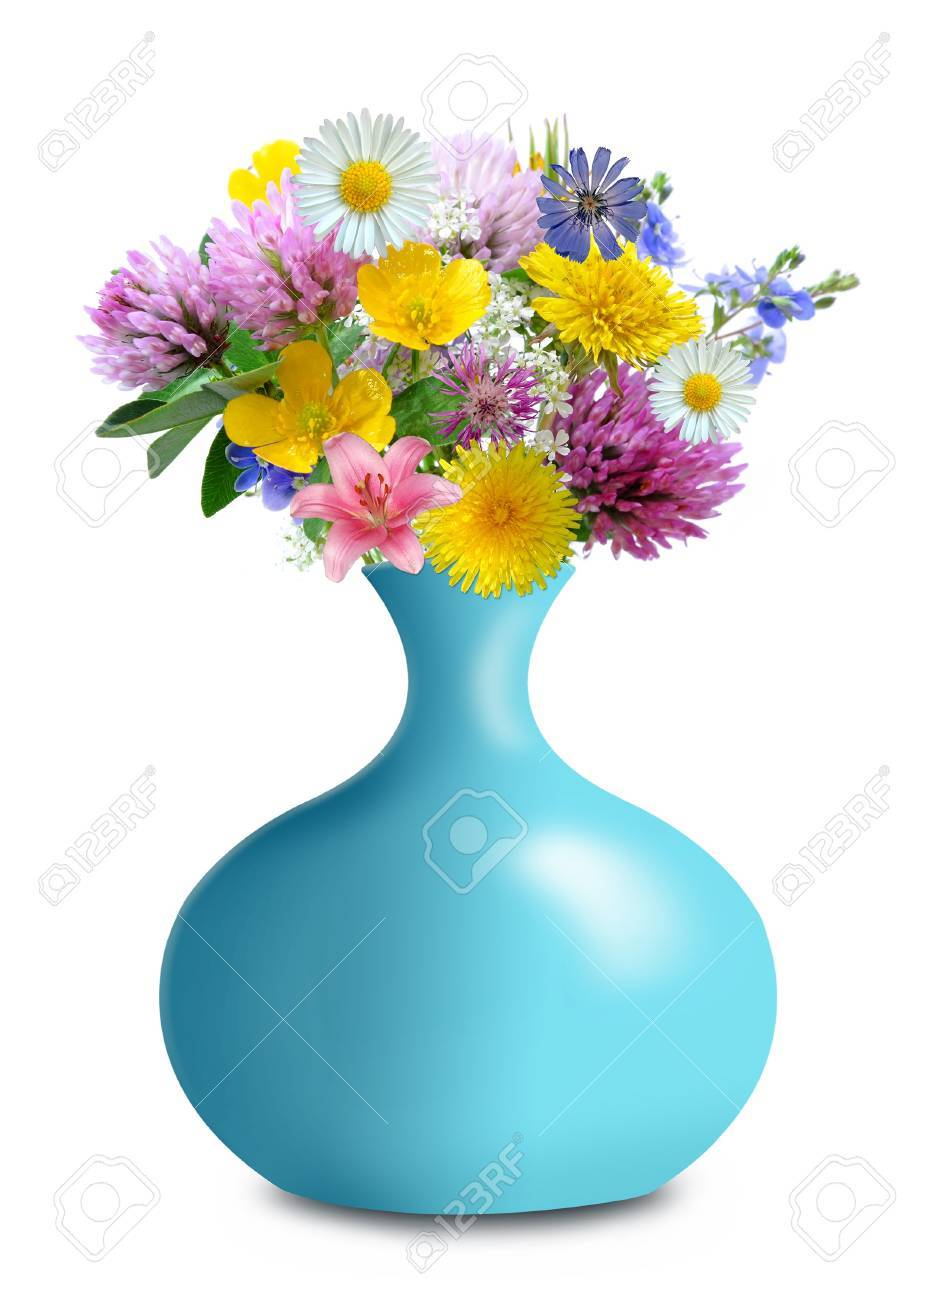 meadow flowers in blue vase isolated on white background Stock Photo - 13114692